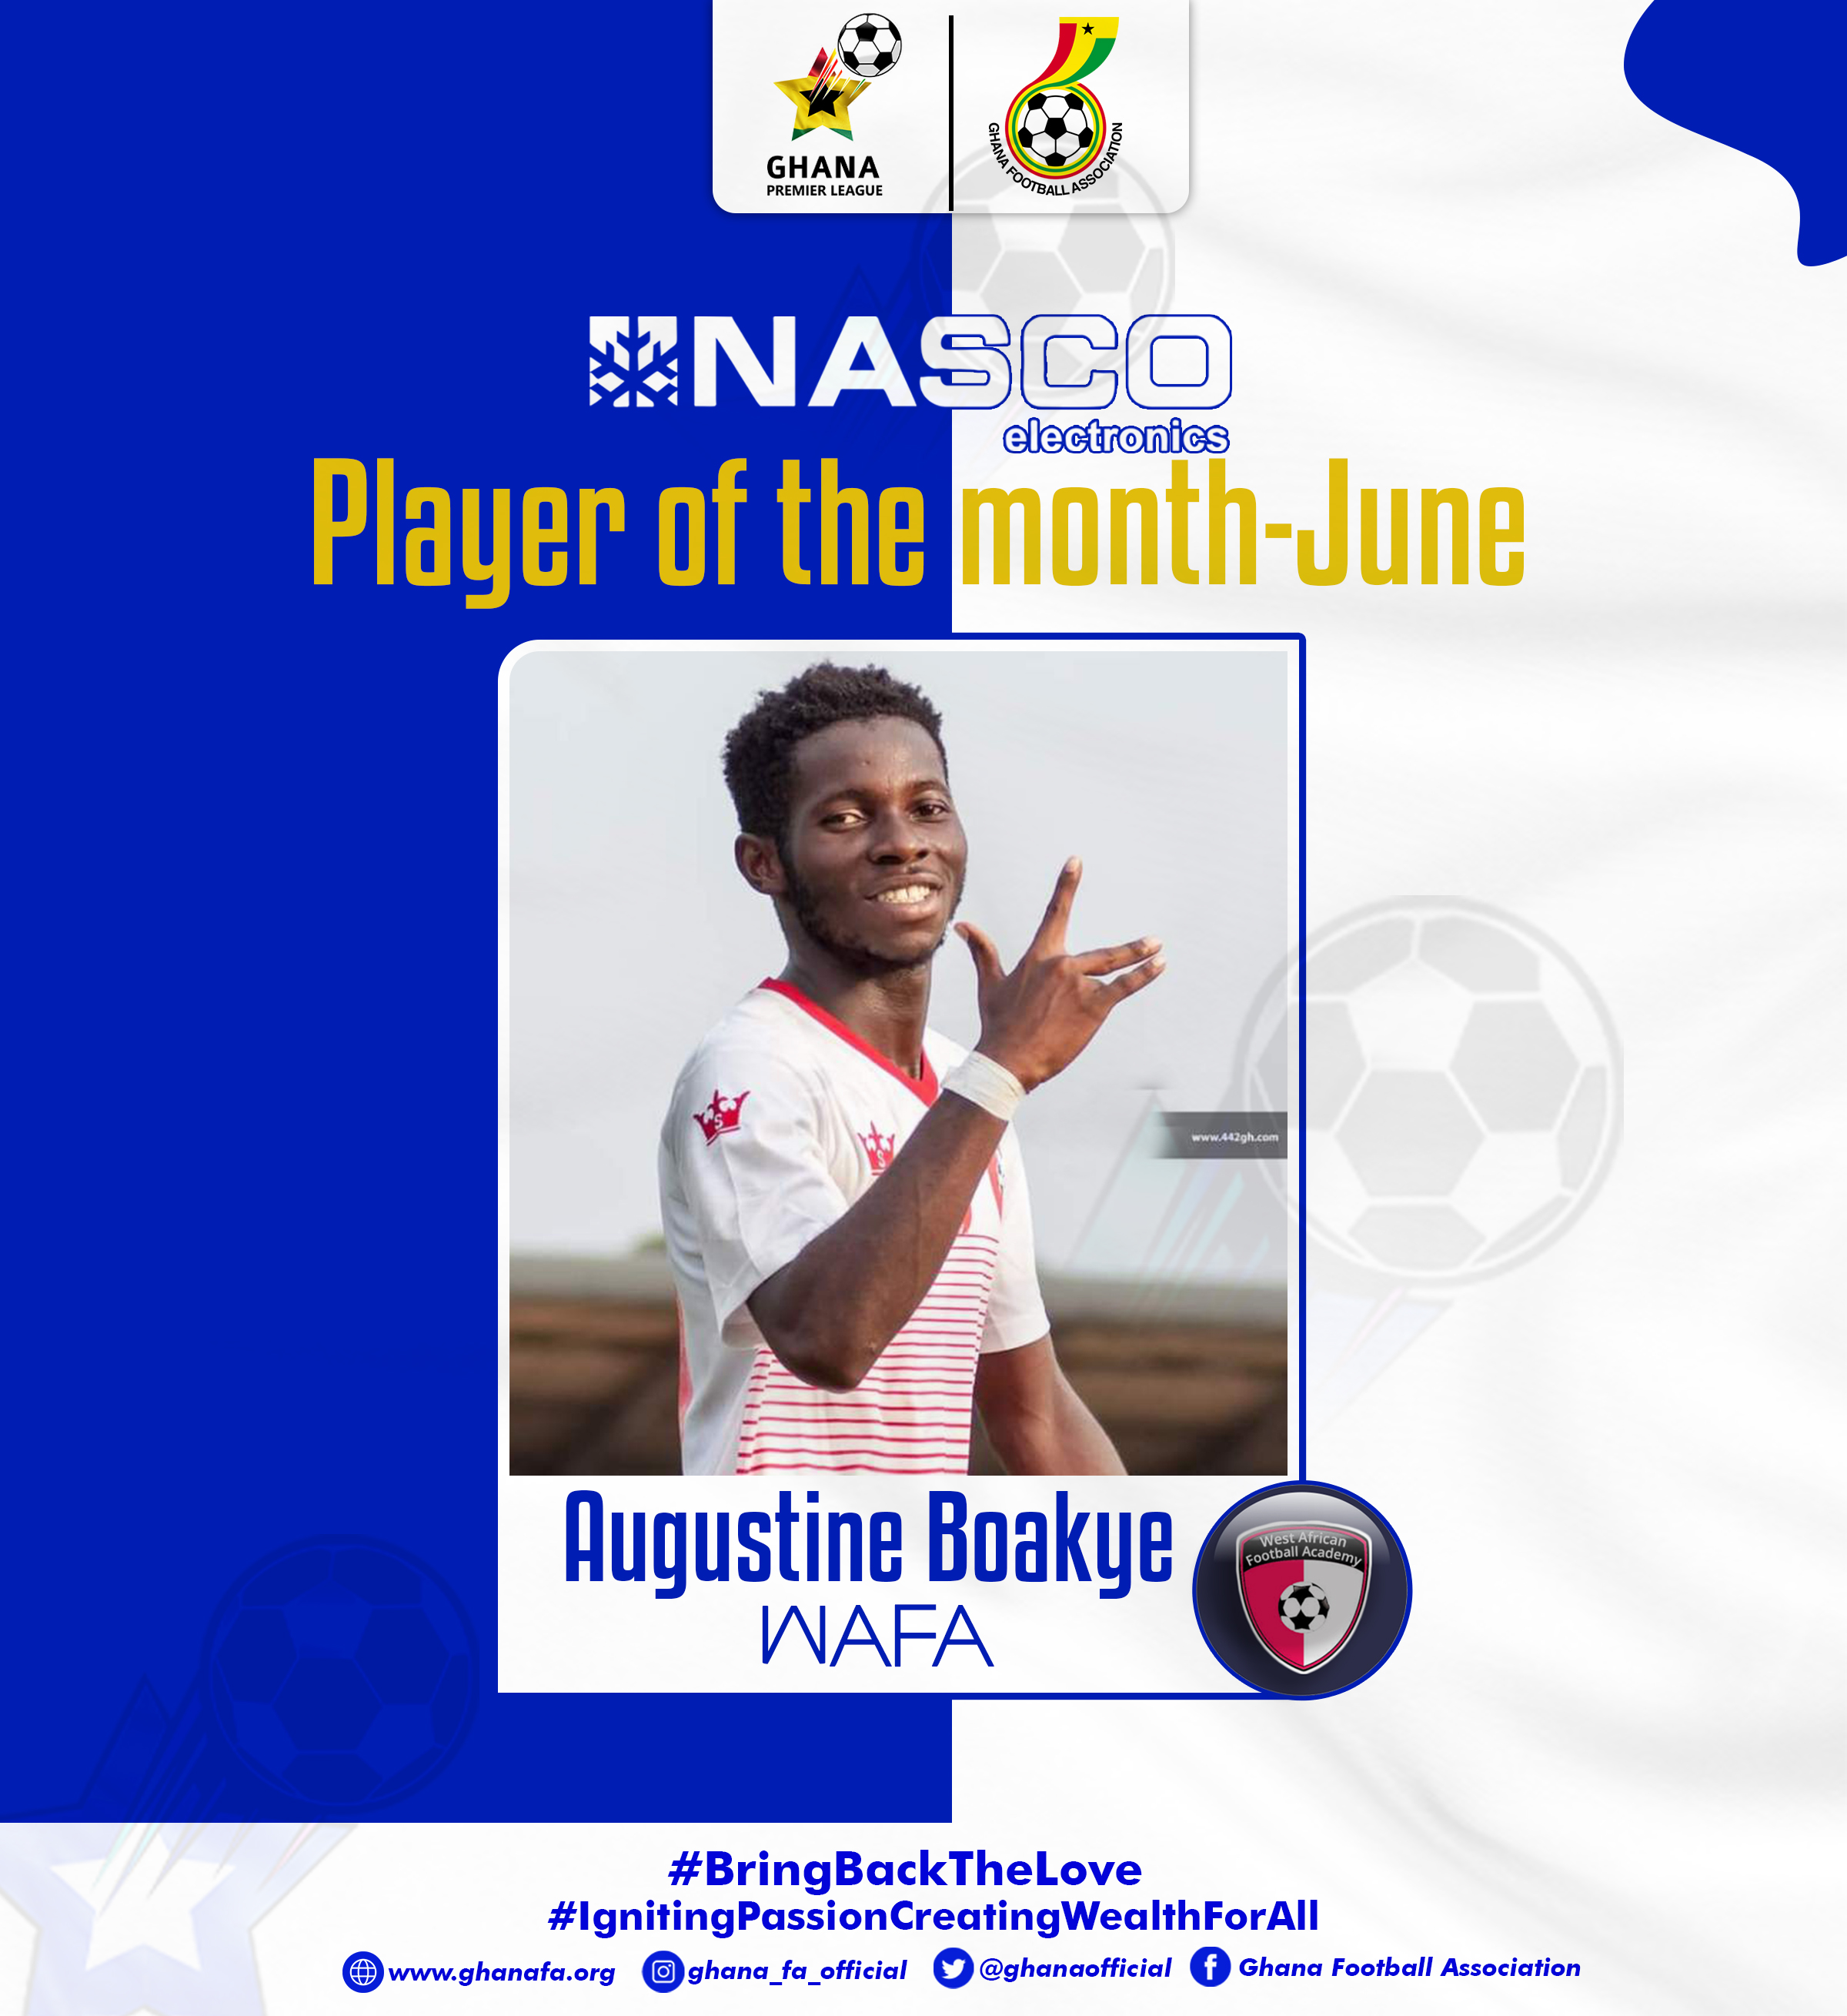 Augustine Boakye wins NASCO GPL Player of Month for June